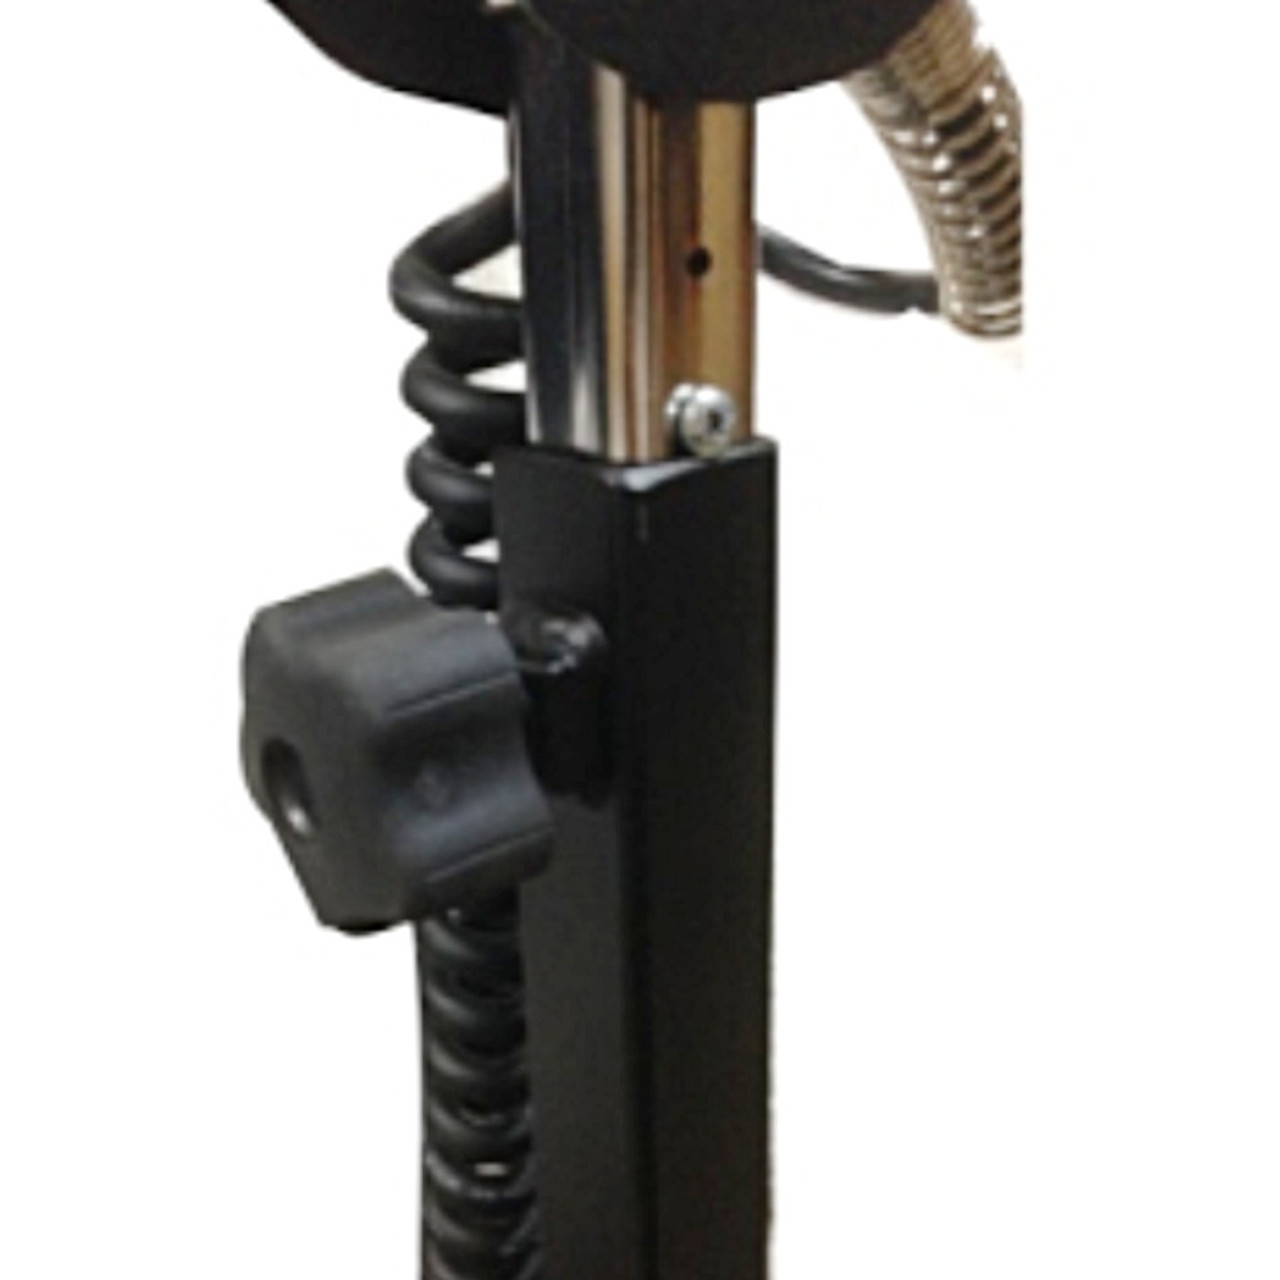 "The Hawk Mighty handle telescopes from 36"" to 48"" to adjust for different height users."